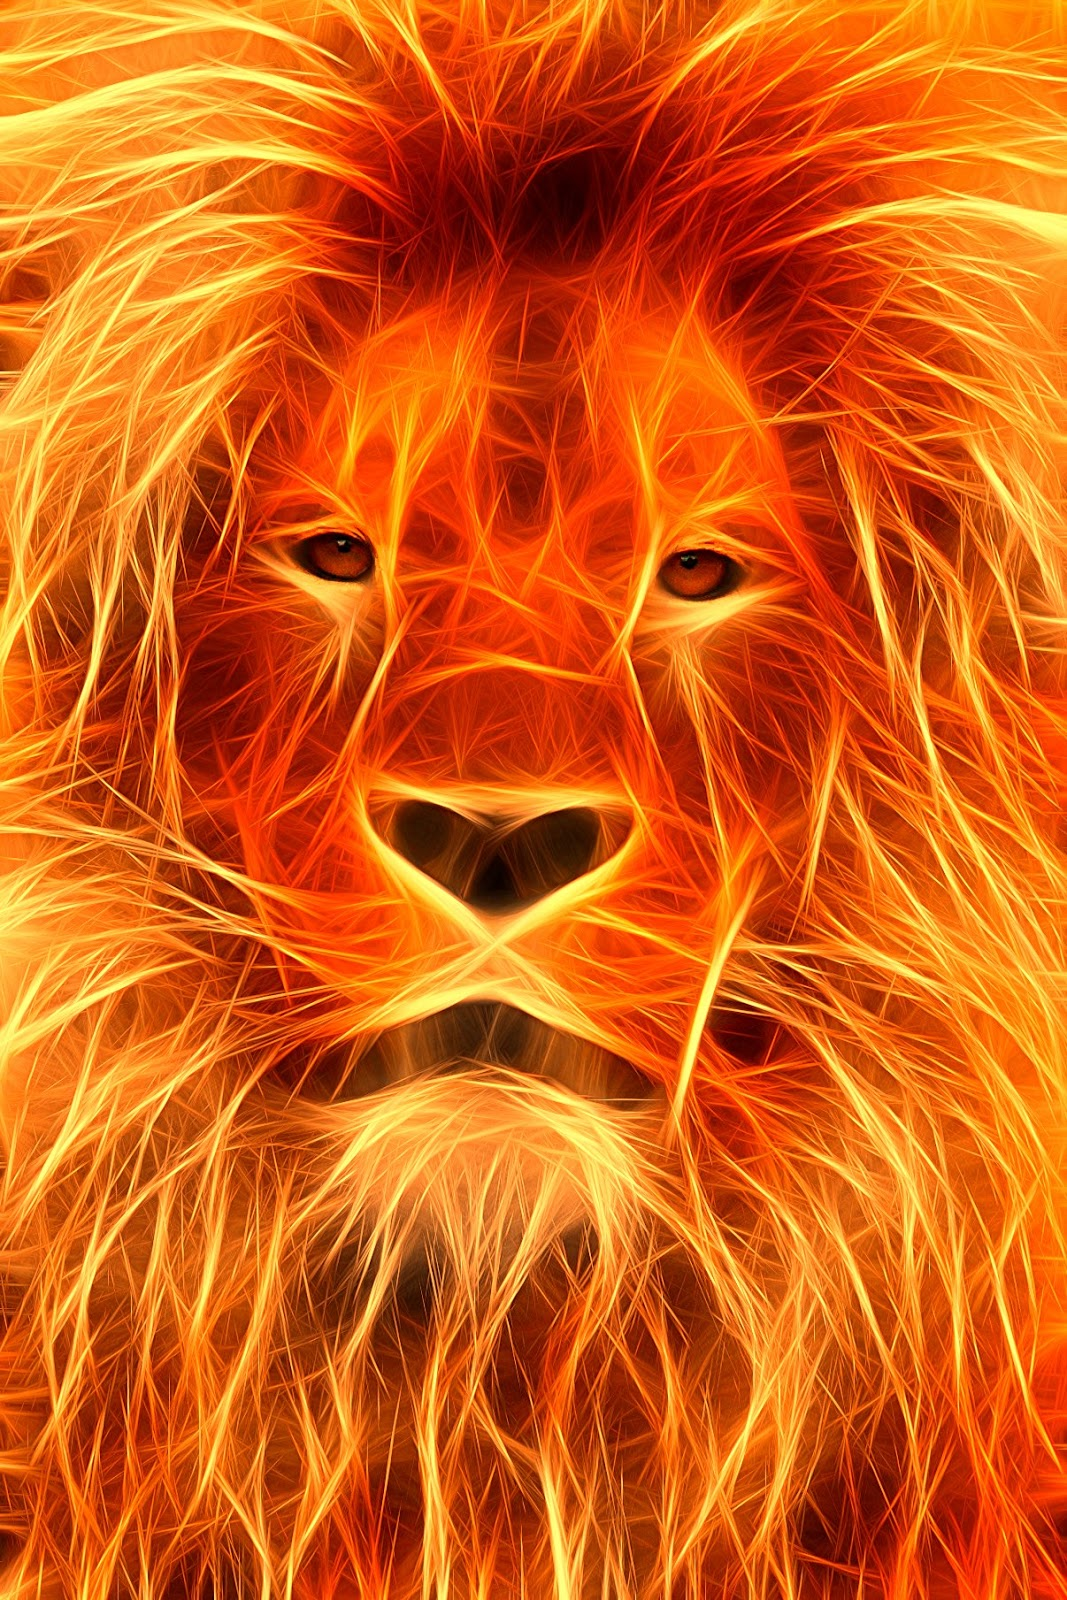 Star Steeds and Other Dreams: THE FIRE LION